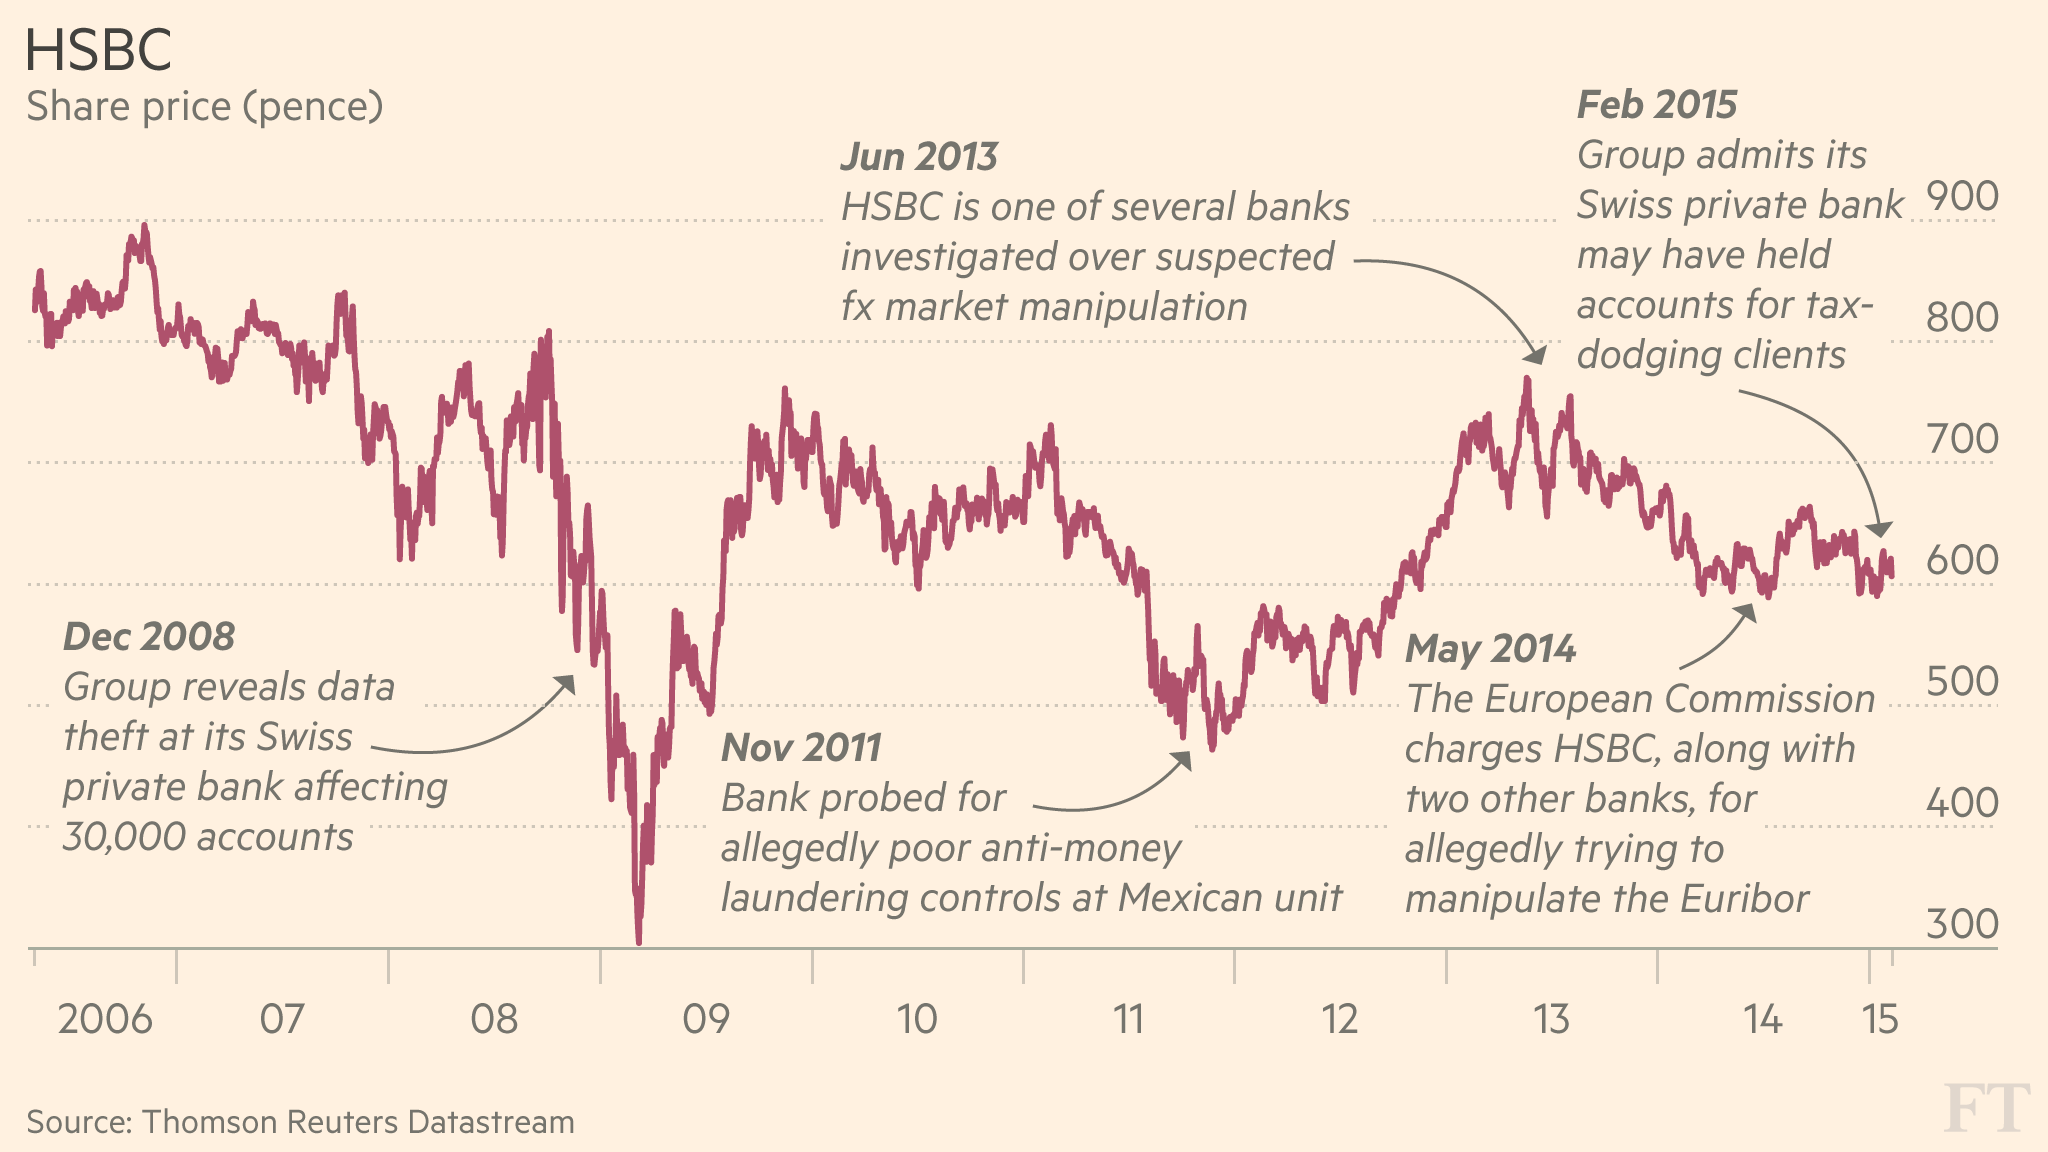 Timeline: History of HSBC controversies | Financial Times